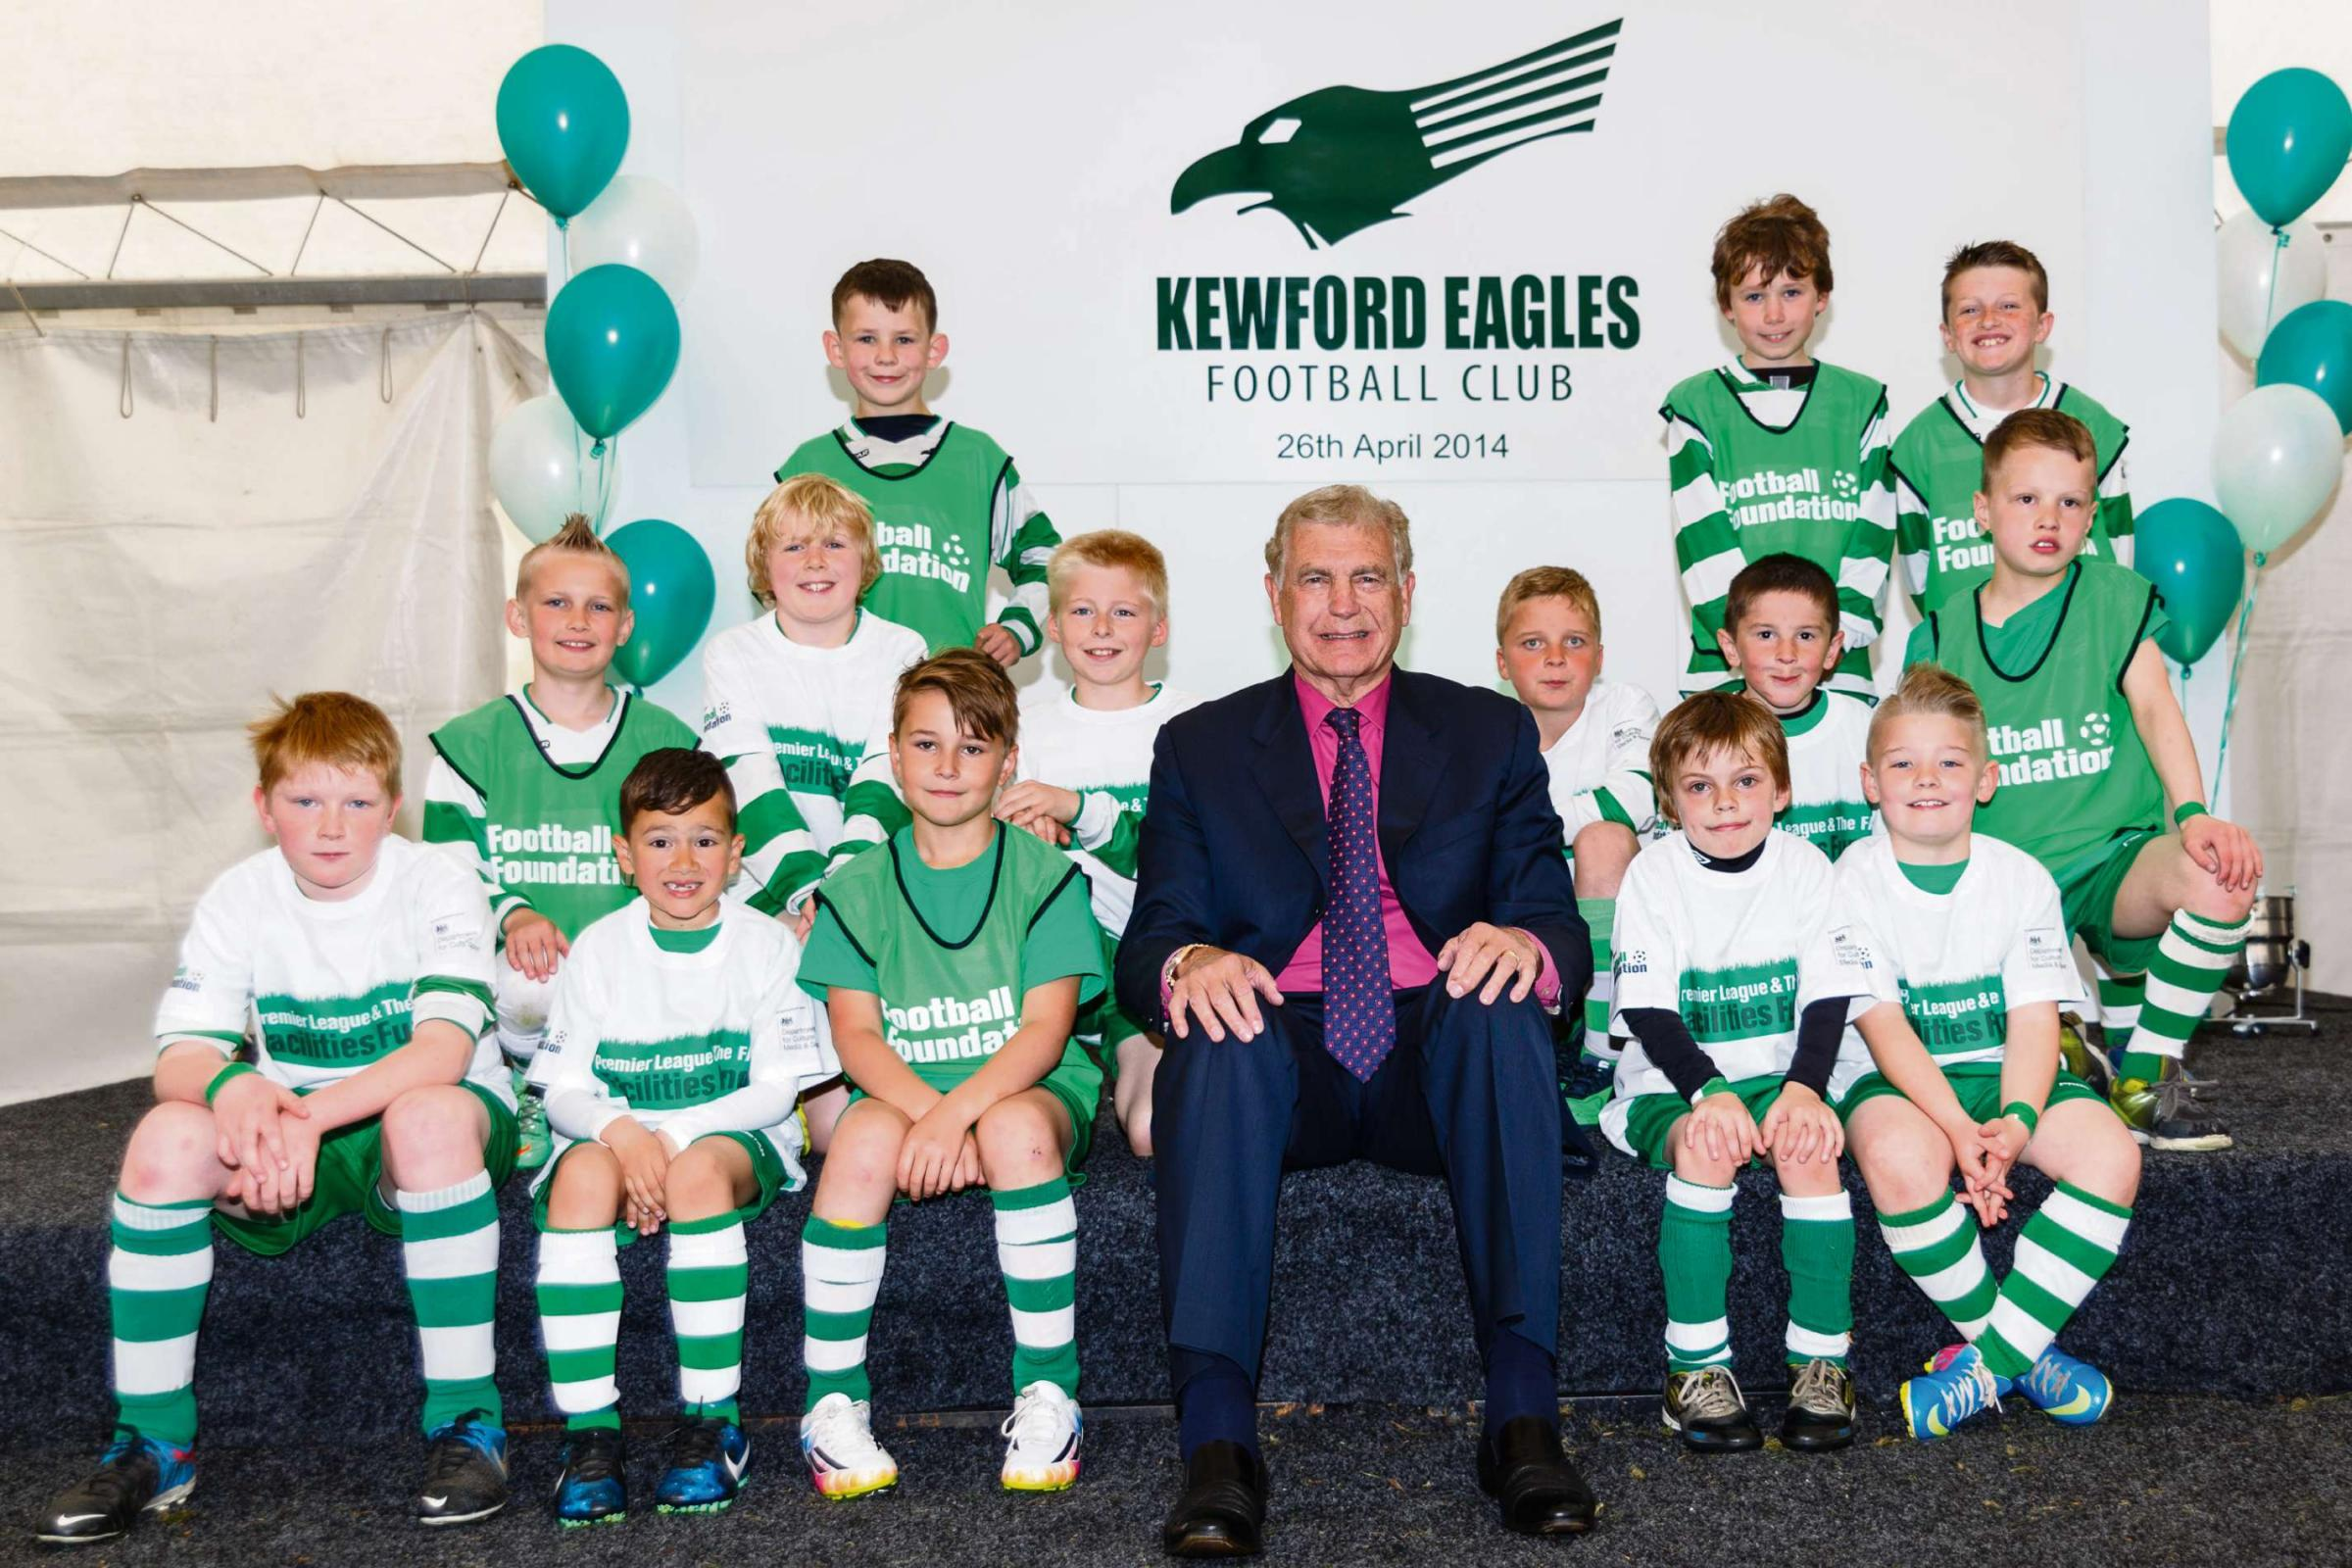 Sir Trevor Brooking CBE at the official opening of the new Kewford Eagles base. Pic by Mark Chappell/Stella Pictures Ltd